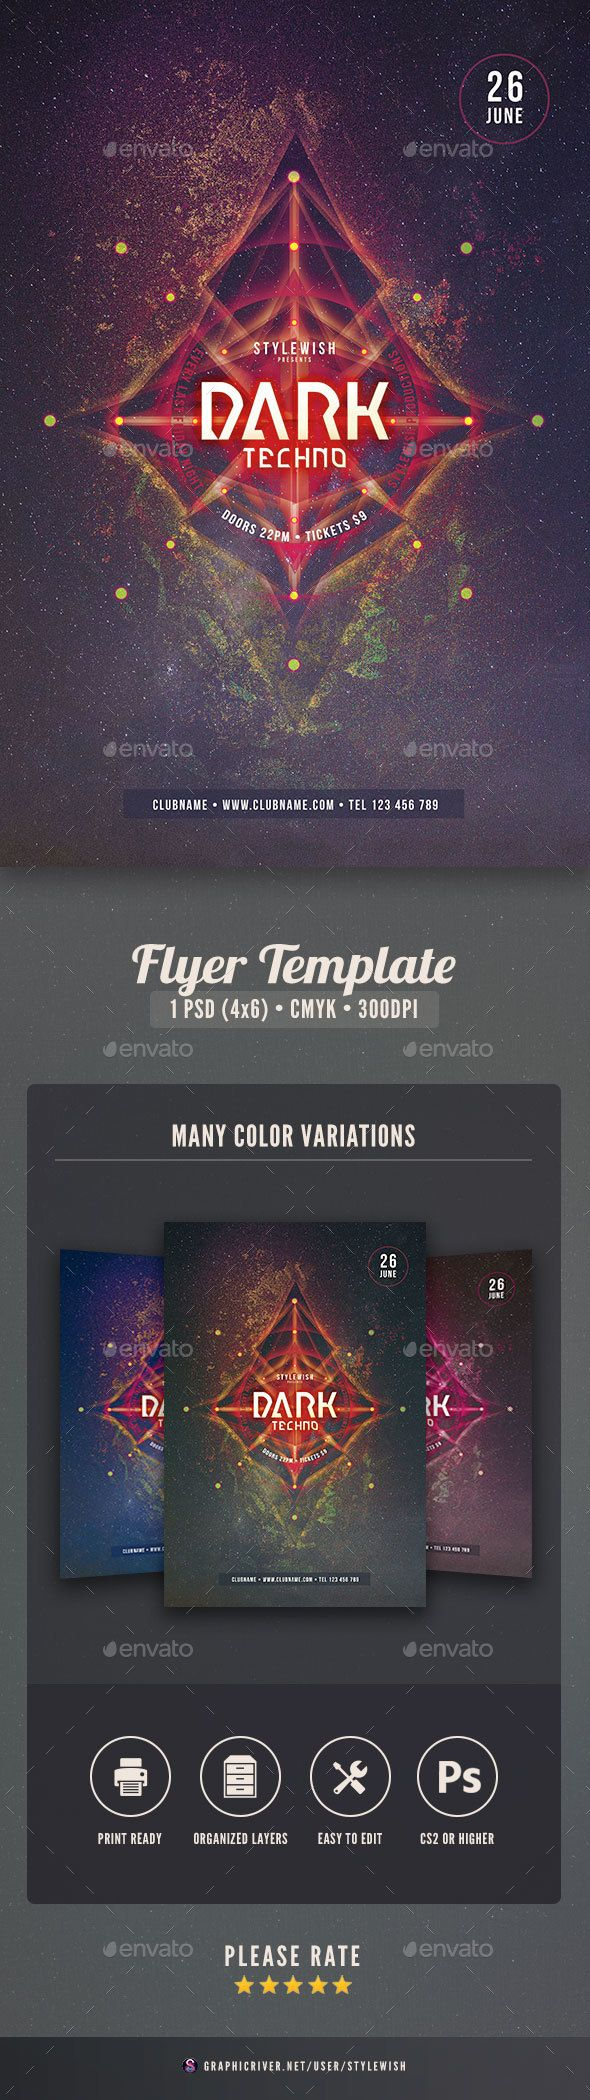 1 color poster design - Dark Techno Flyer